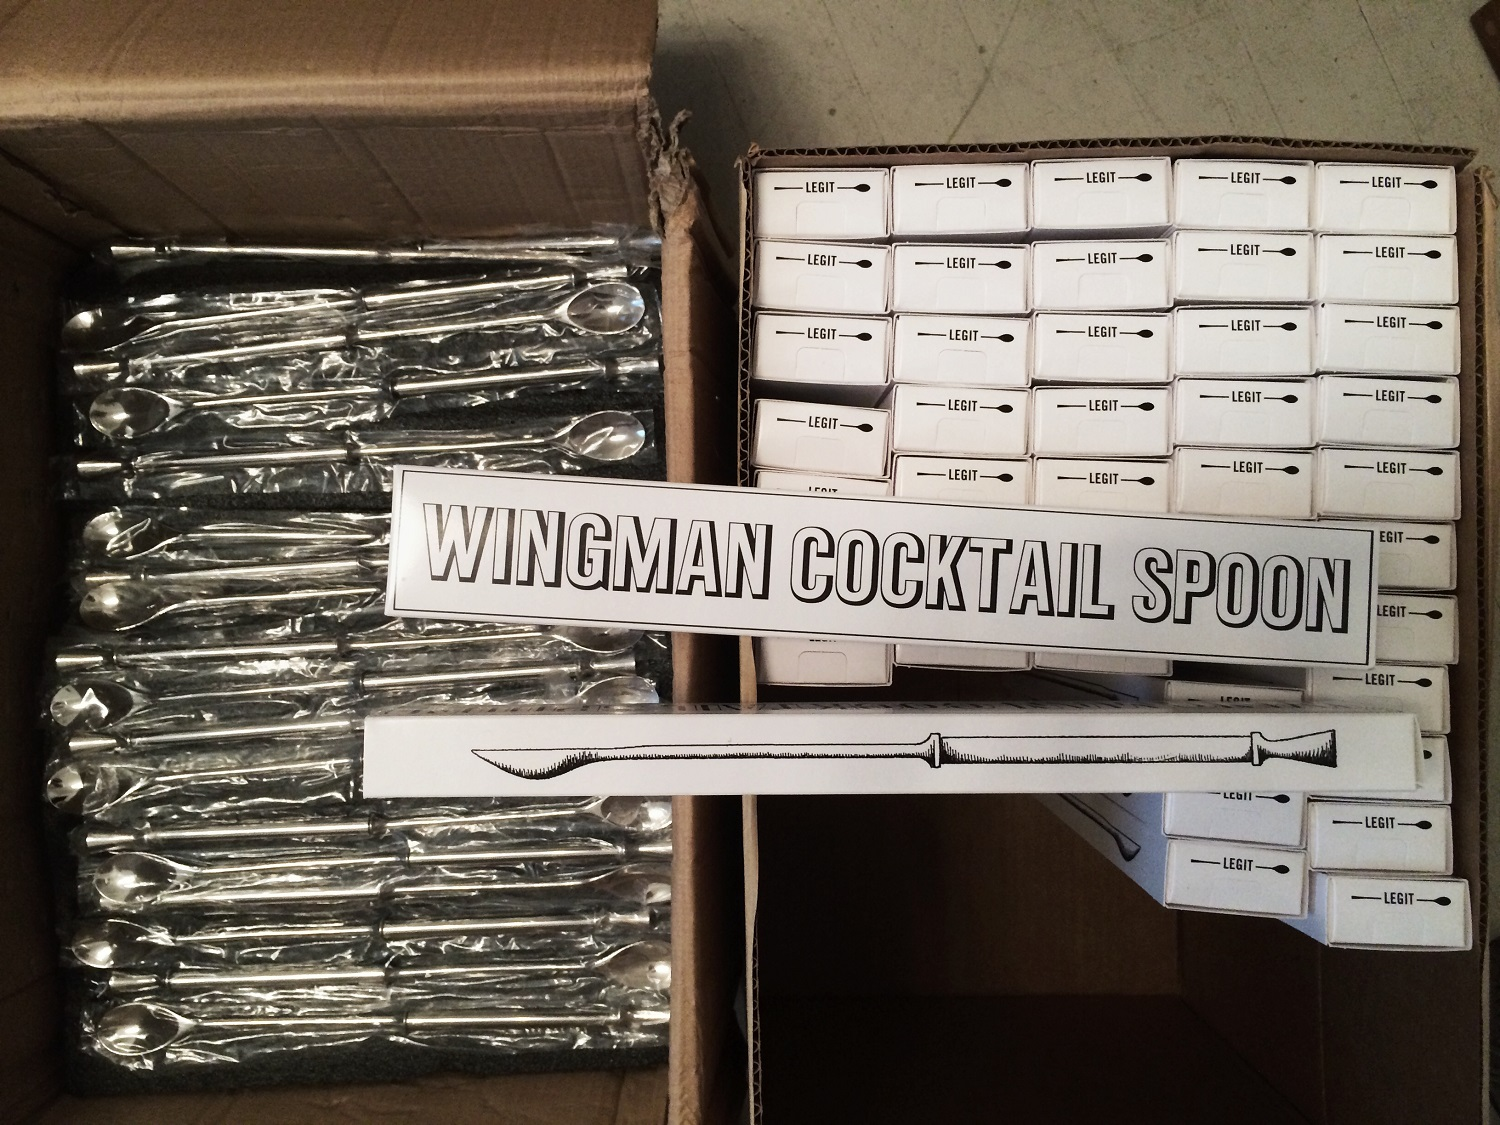 Wingman Cocktail Spoon being boxed up